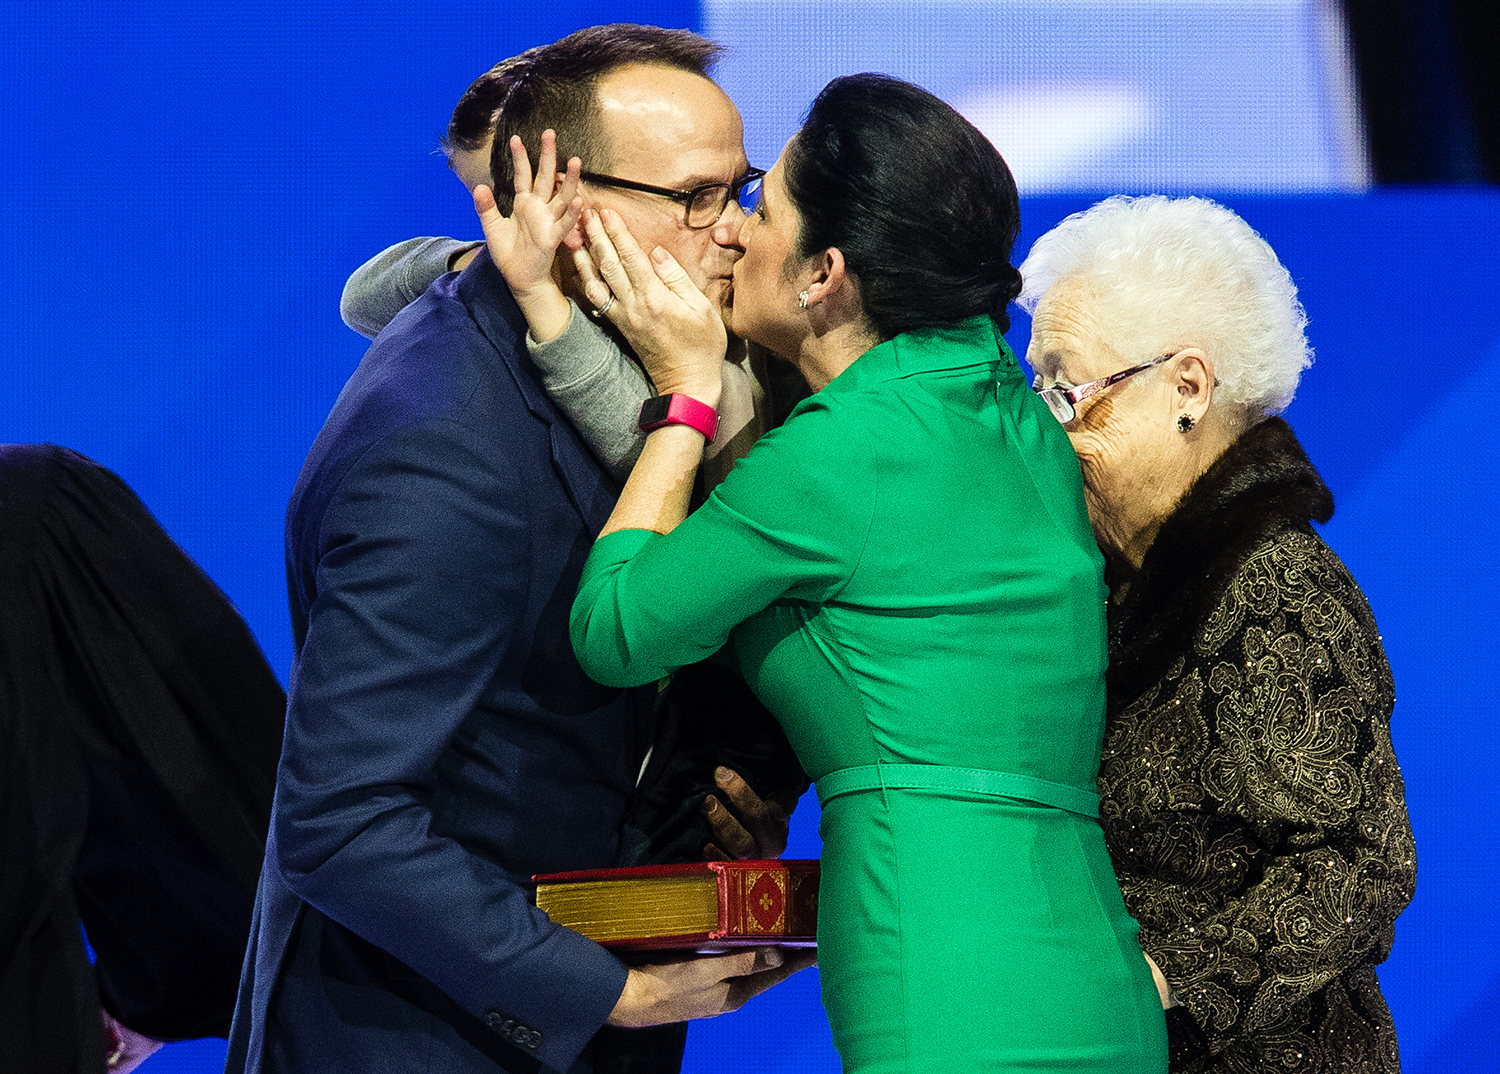 Comptroller Susana Mendoza kisses her husband David Szostak as their son David gets caught in the middle and raises his hand during the Illinois Inaugural Ceremony at the Bank of Springfield Center Monday, Jan. 14, 2019. [Ted Schurter/The State Journal-Register]